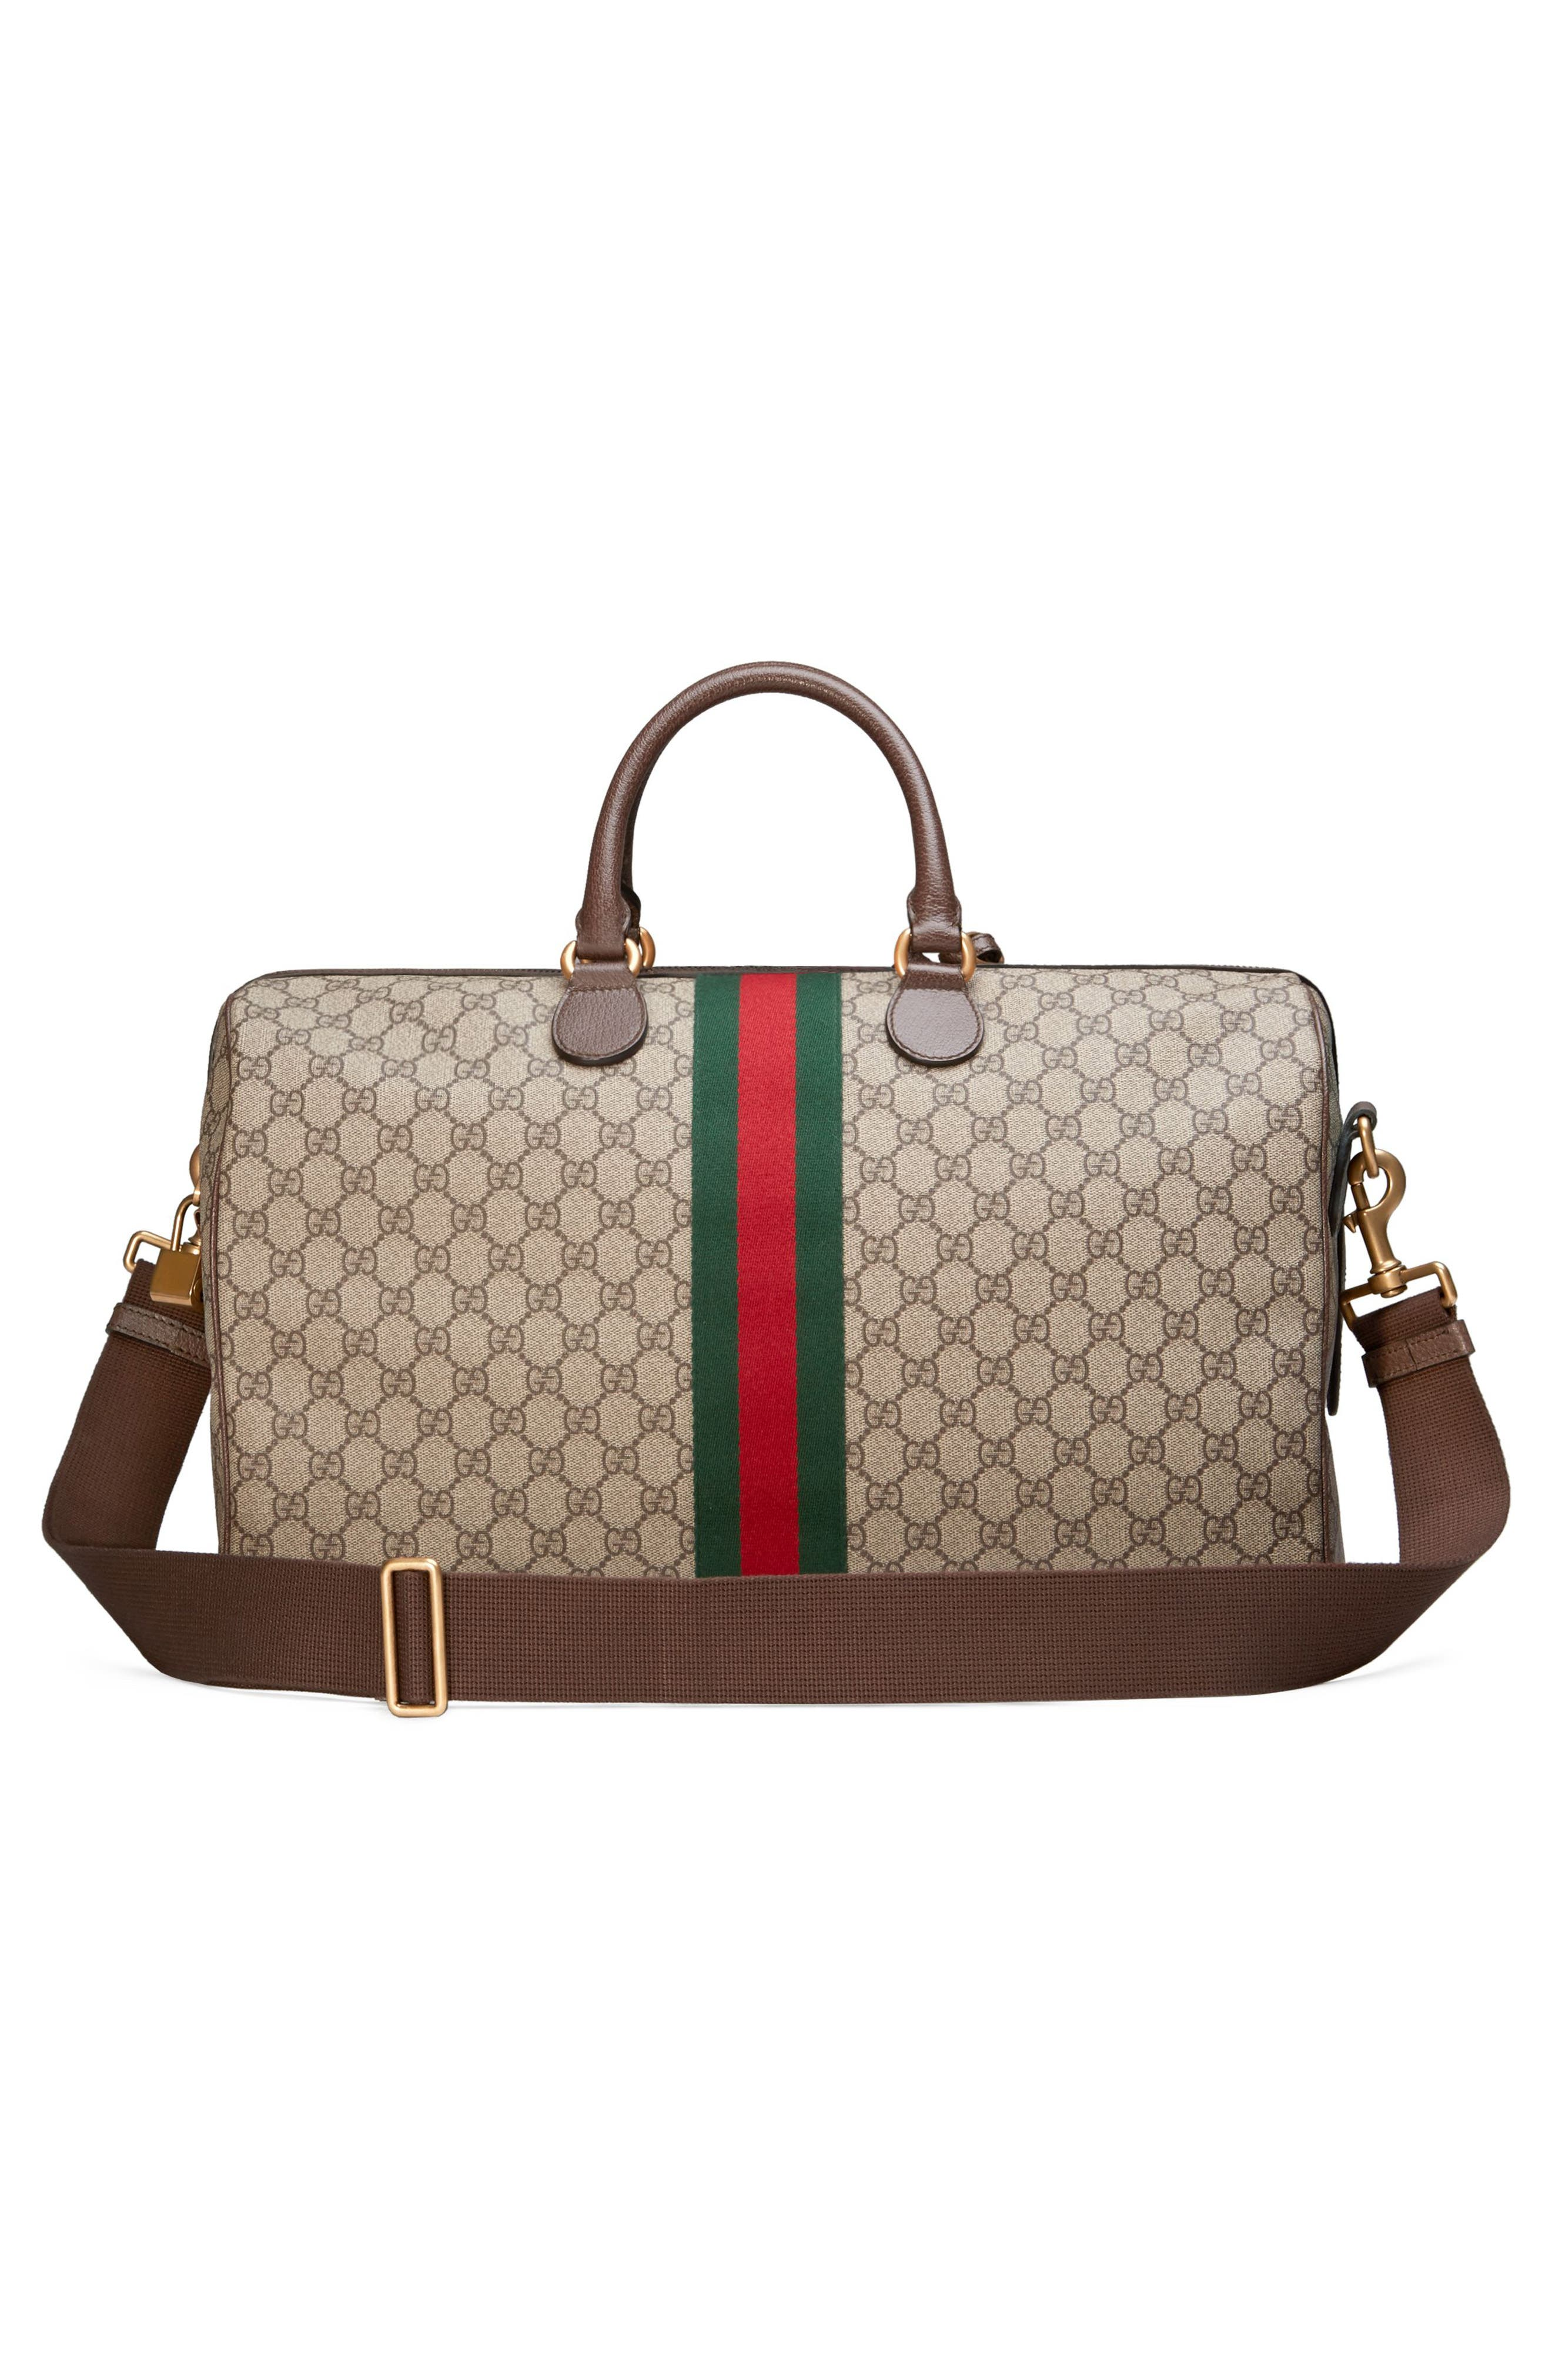 GUCCI,                             Medium Ophidia GG Supreme Carry-On Duffel,                             Alternate thumbnail 4, color,                             BEIGE EBONY/ NEW ACERO